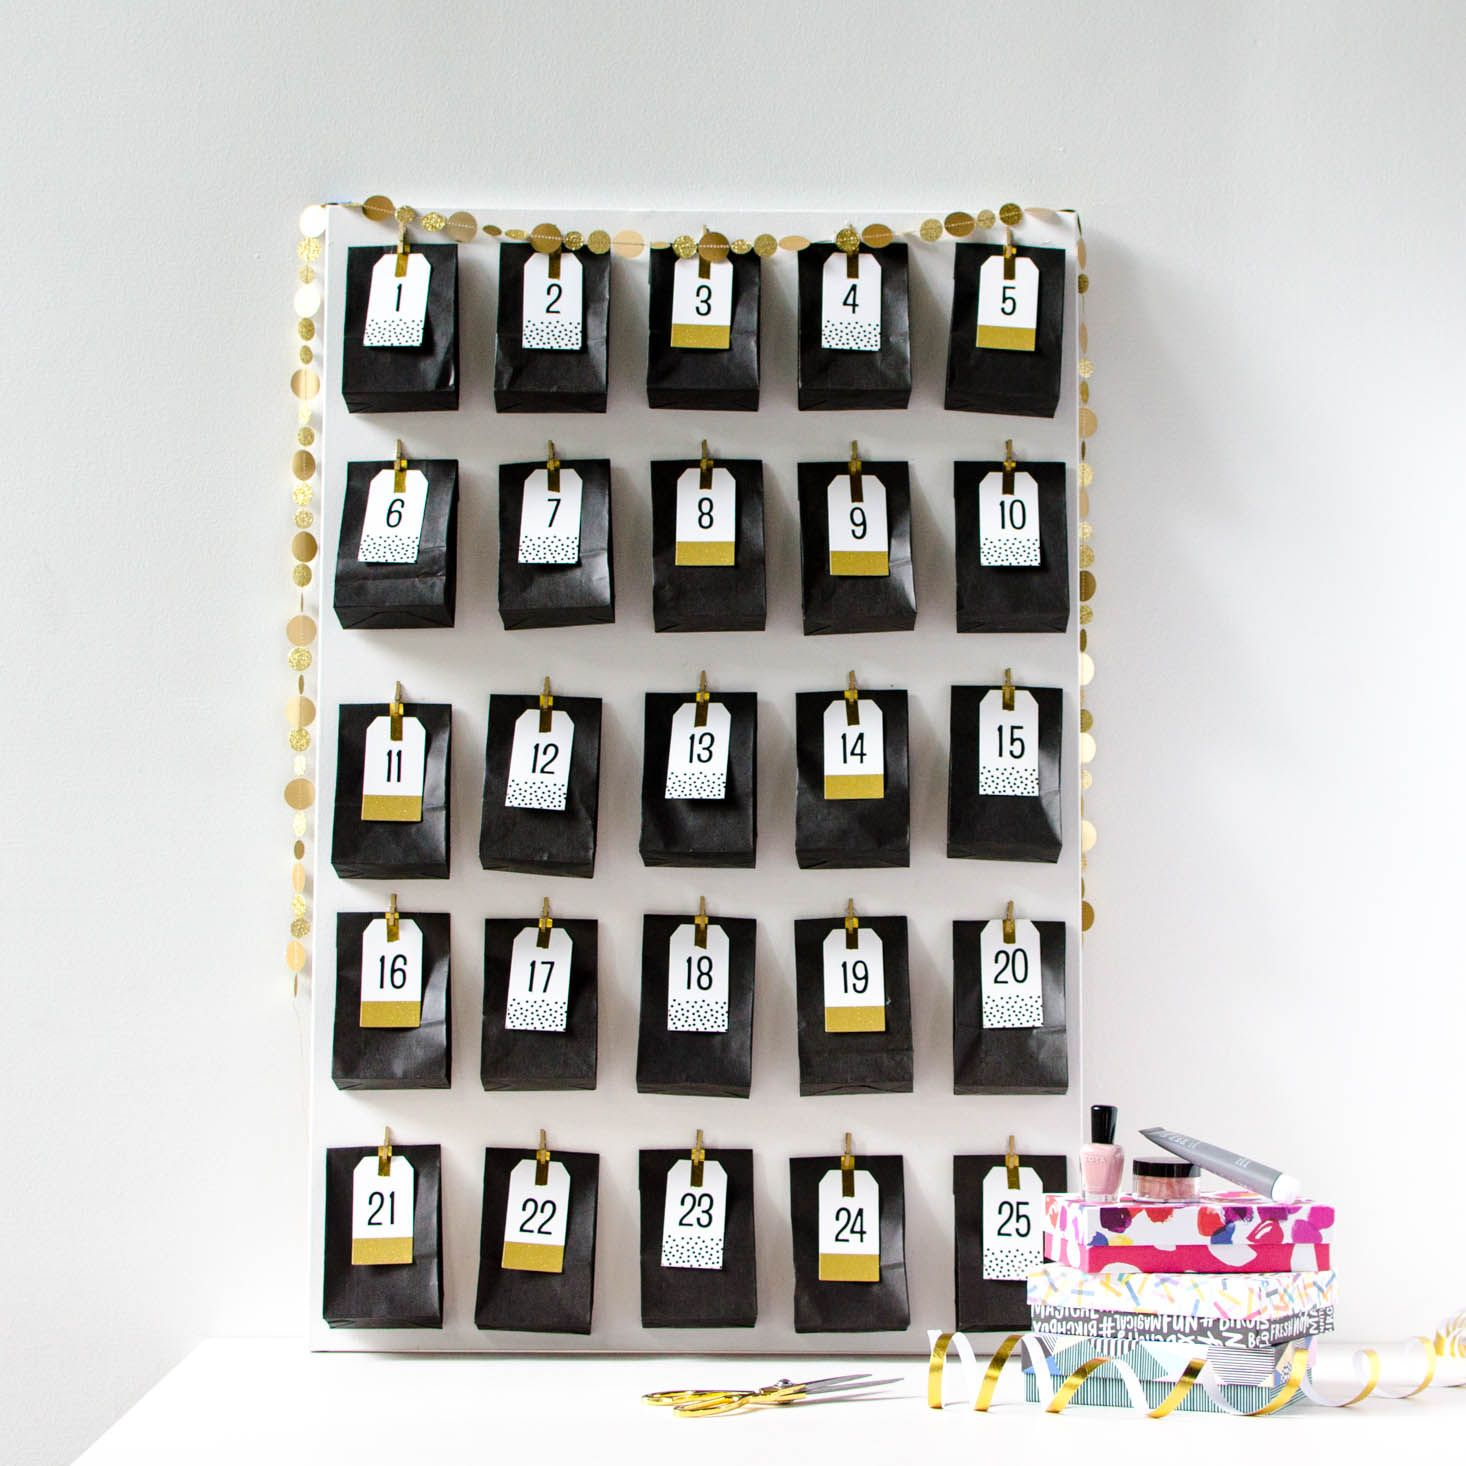 Obsessed with Advent Calendars like we are? Time to make your own with your extra beauty samples from subscription boxes!